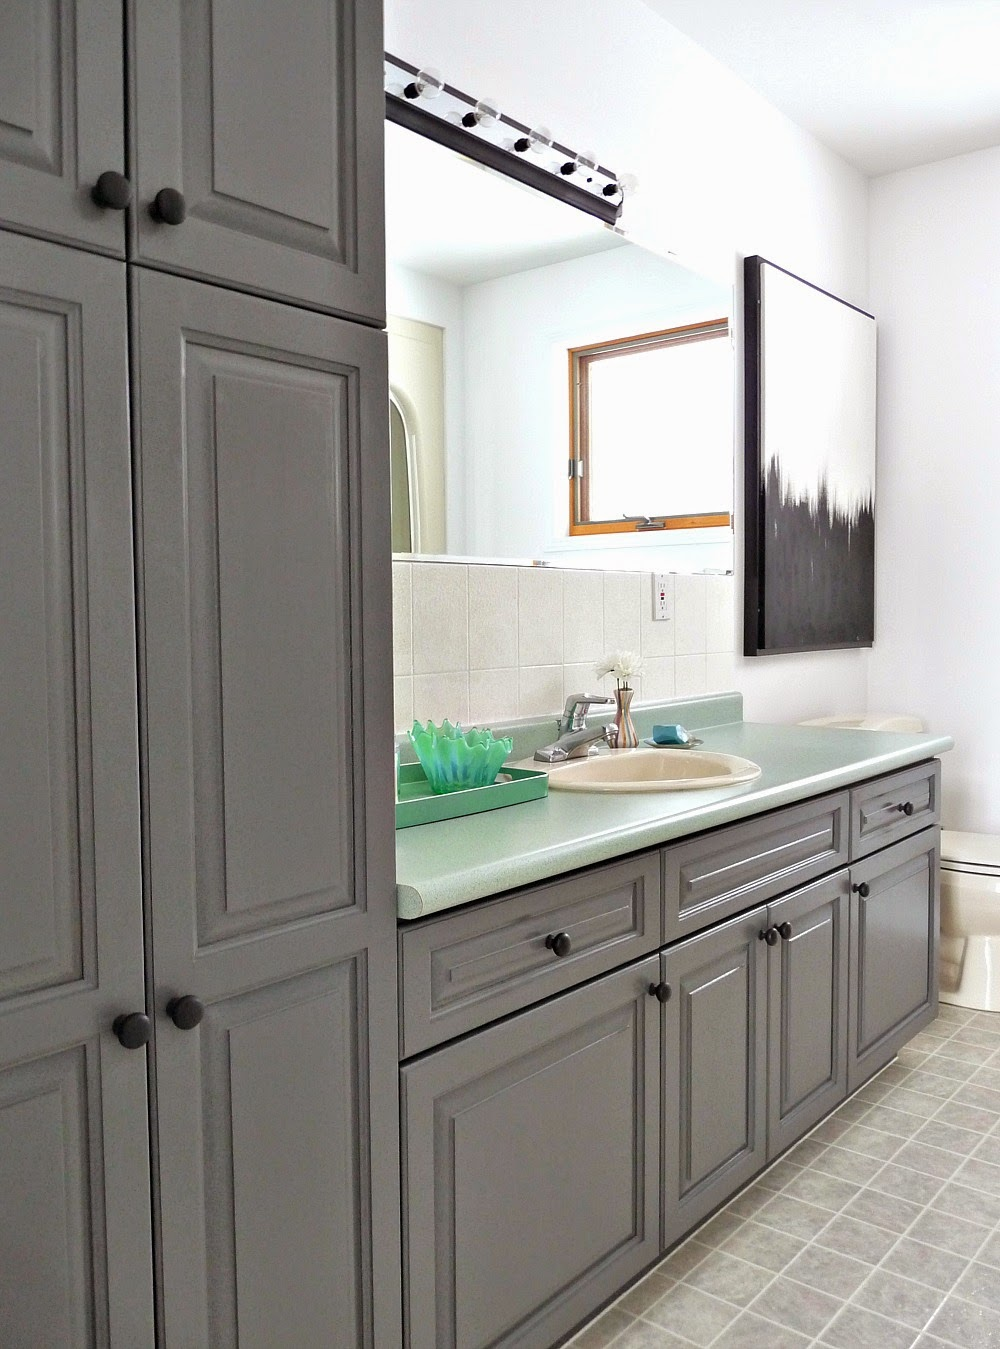 Bathroom Makeover With Rustoleum Cabinet Transformations ...